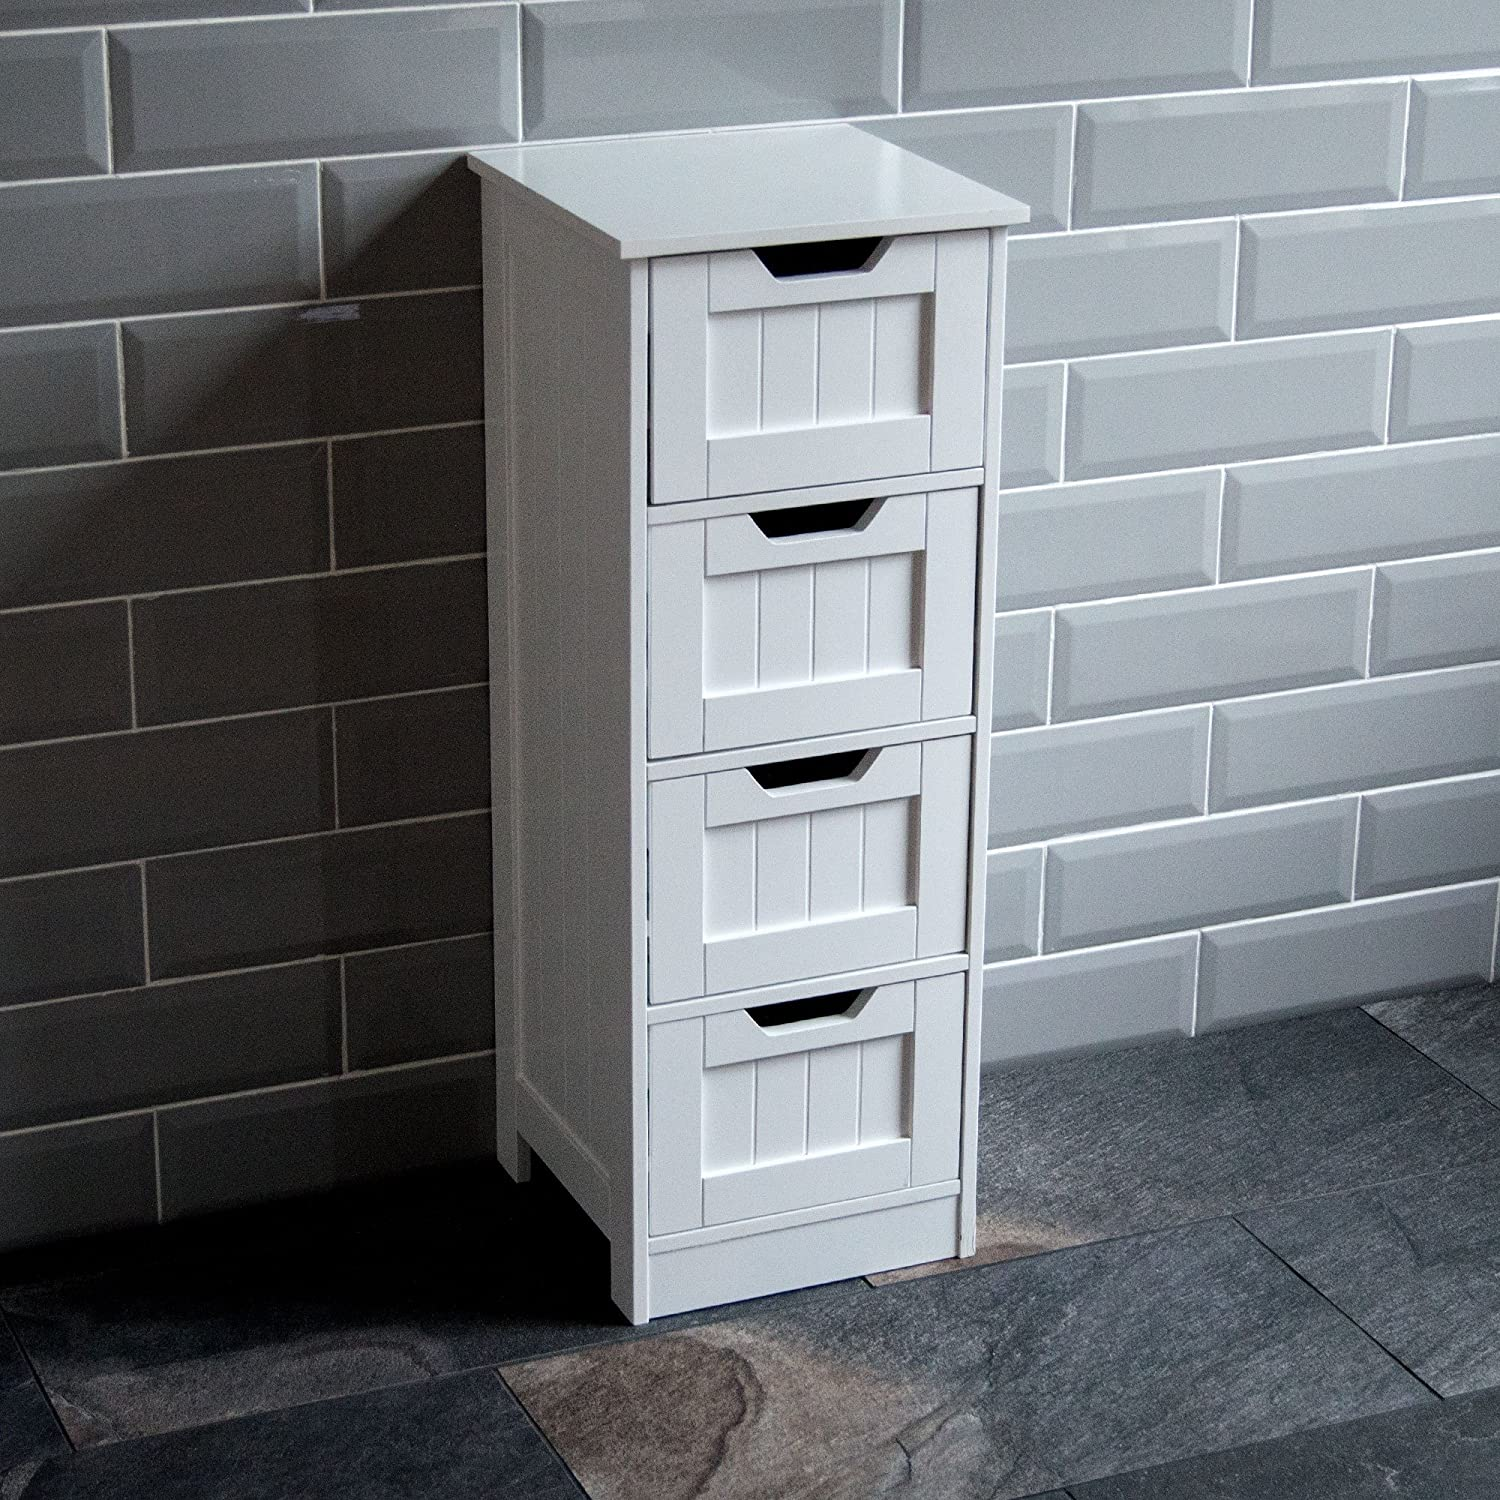 Bath Vida 5-Drawer Floor Standing Cabinet Unit Bathroom Storage, Wood, White